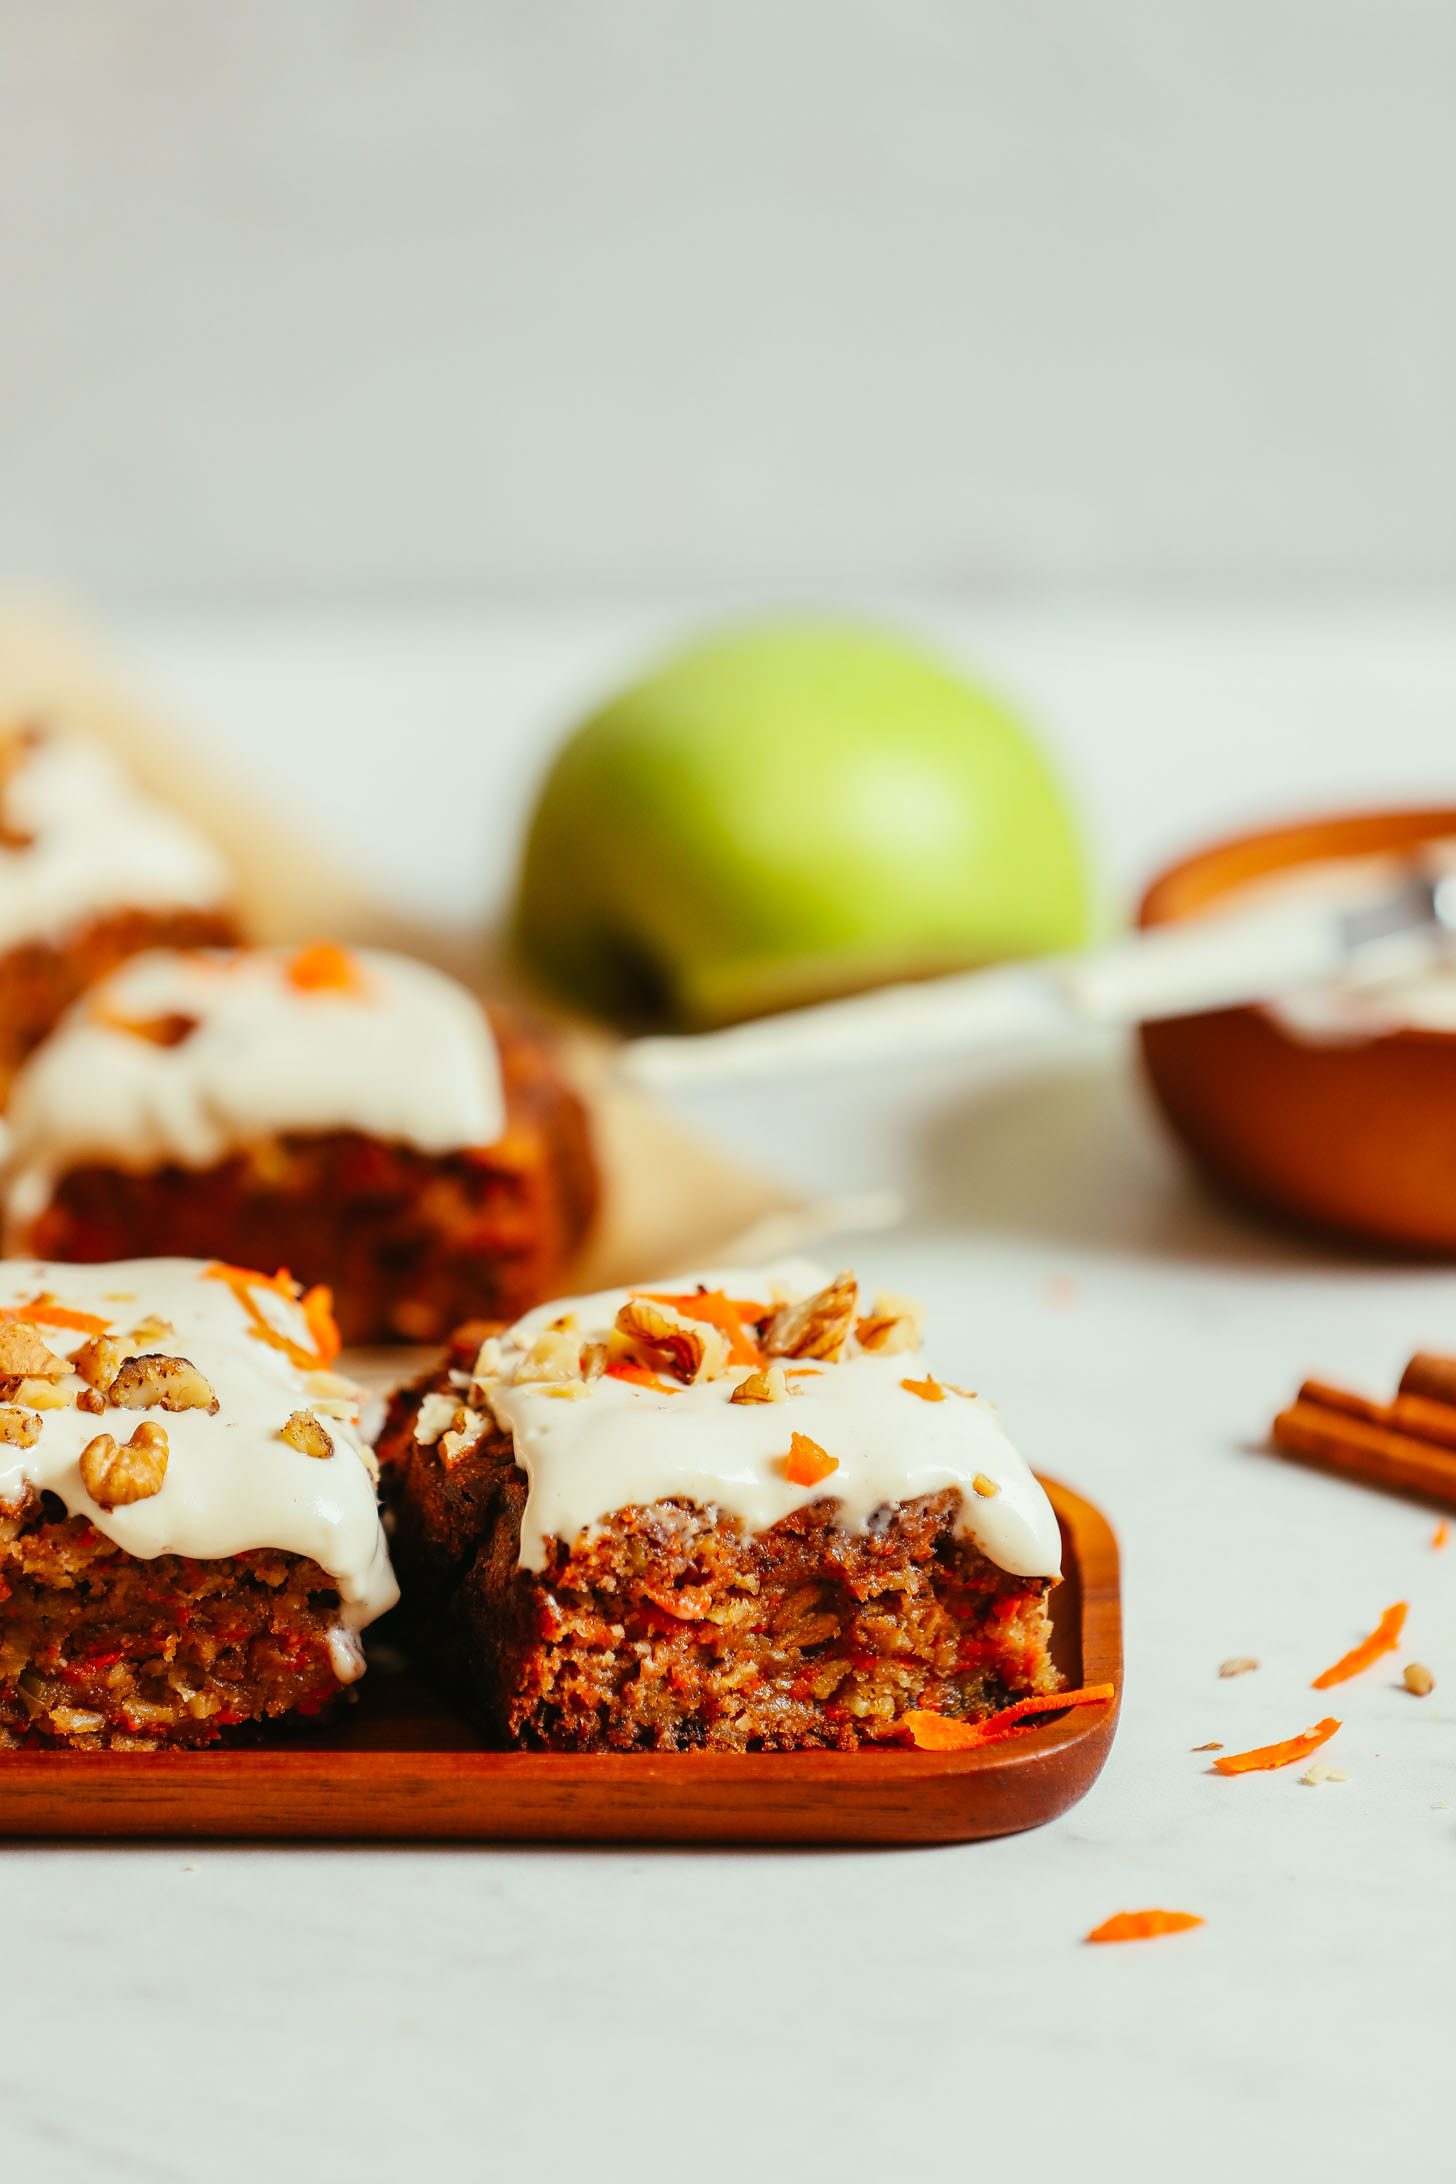 Wood tray and parchment paper with slices of gluten-free vegan Carrot Apple Snack Cake